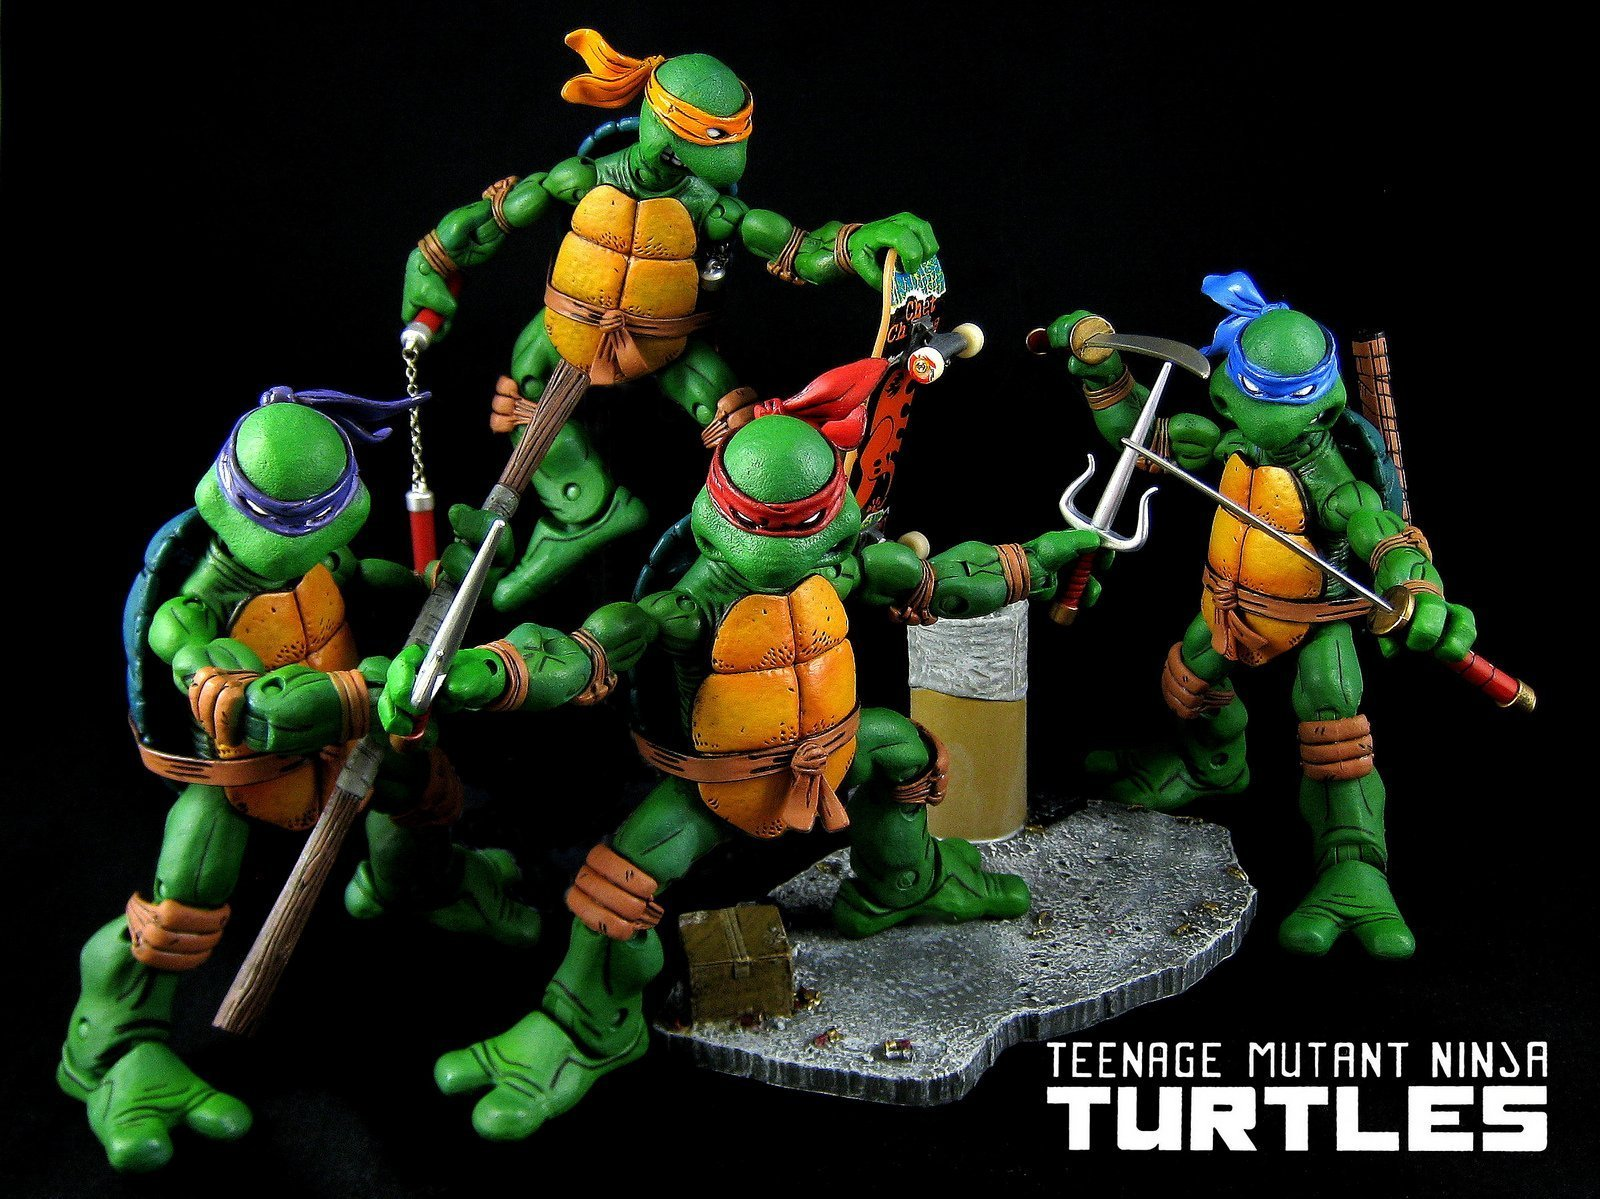 Teenage Mutant Ninja Turtles | Photo: Flickr